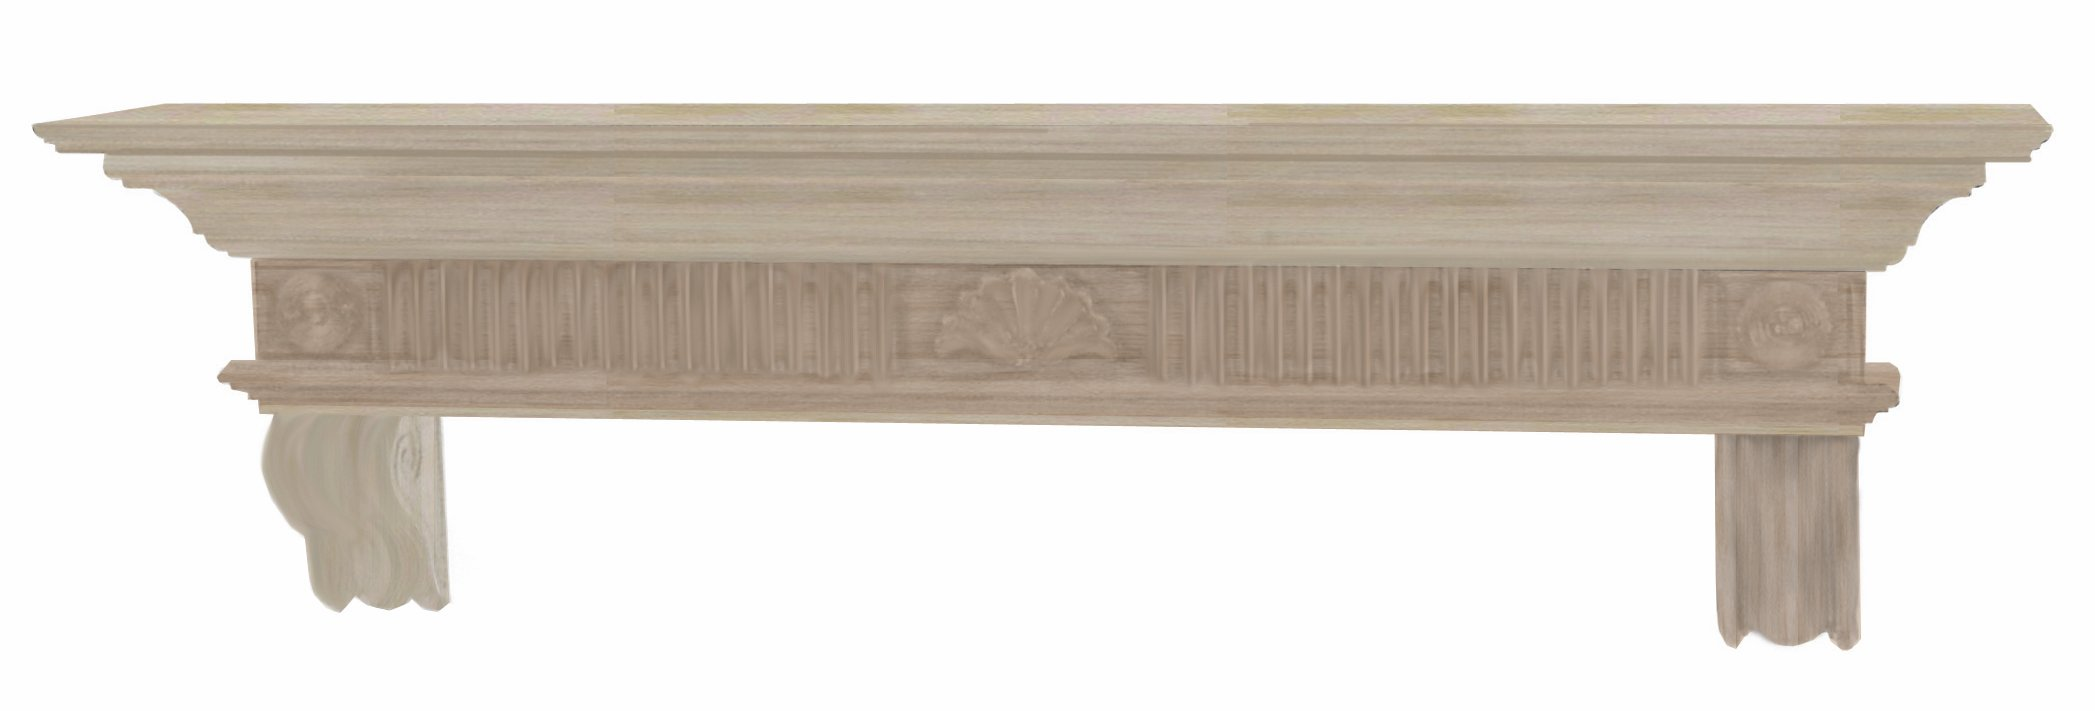 Pearl Mantels 416-60 Devonshire Fireplace Mantel Shelf, 60-Inch, Unfinished by Pearl Mantels